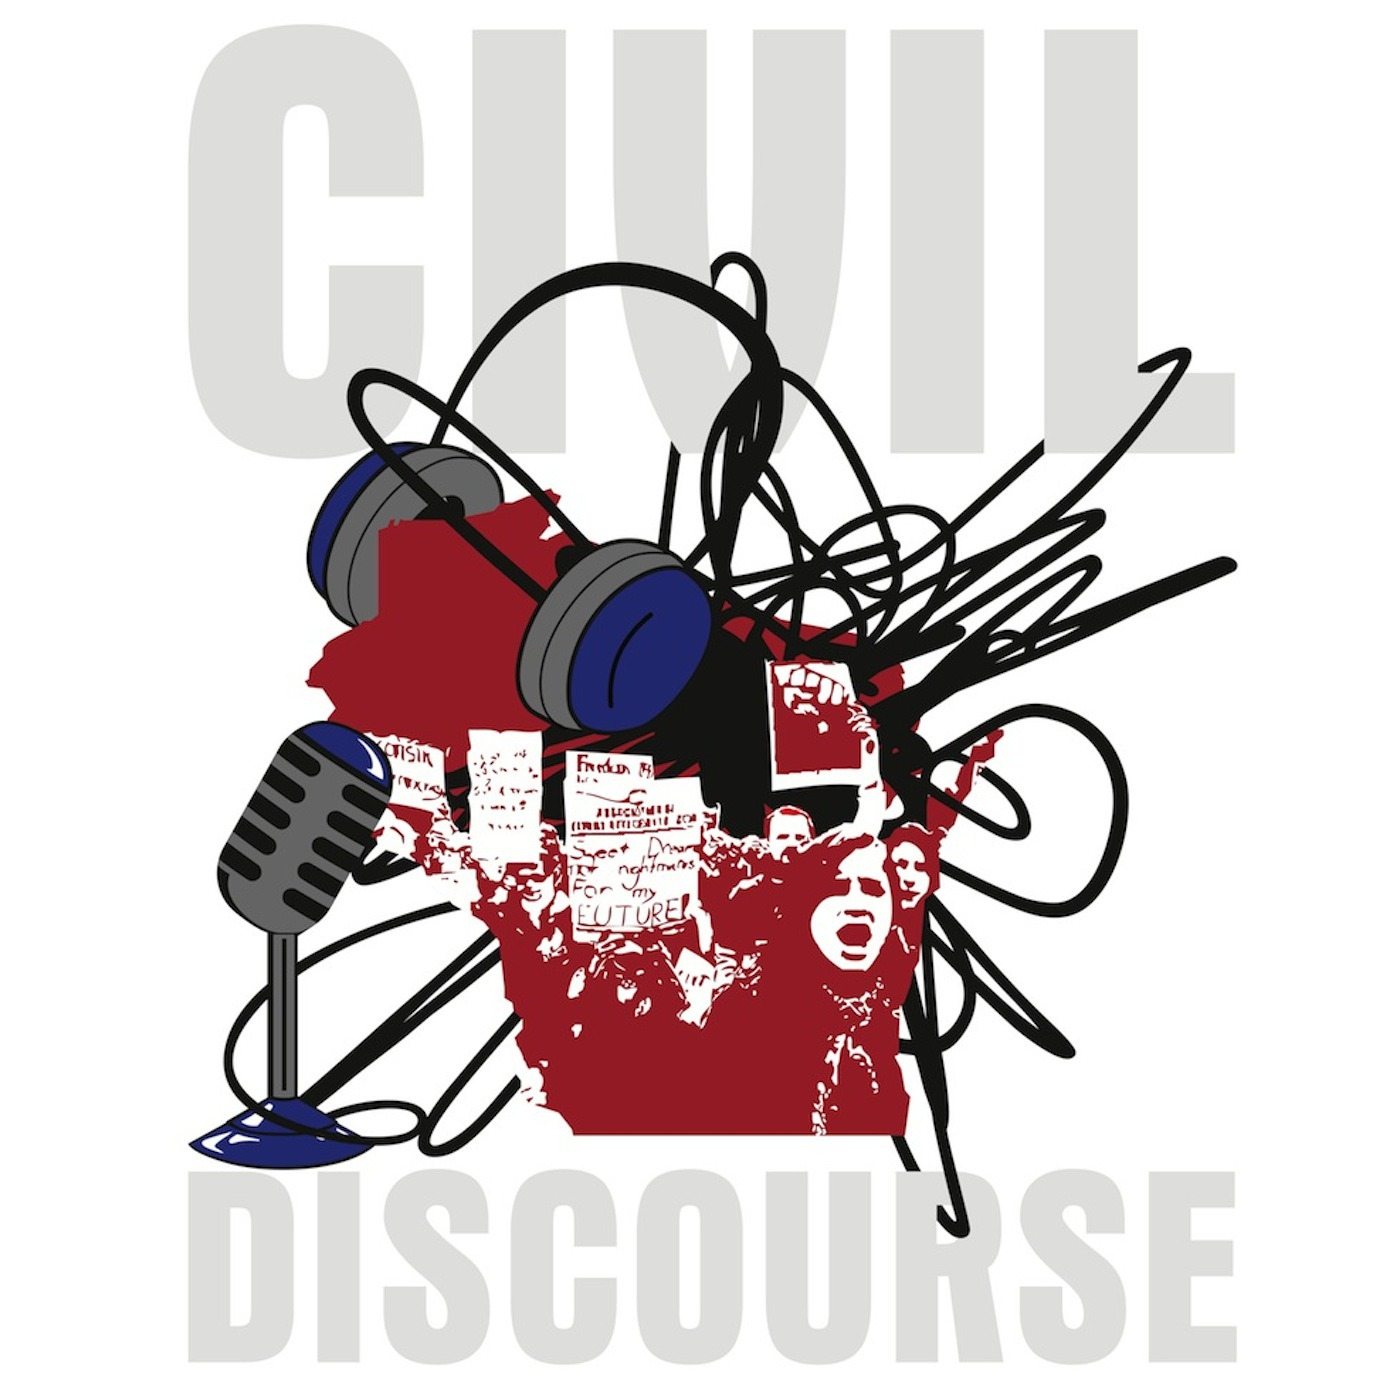 Civil Discourse | Progressive Radio; Grassroots media; current events; history; Democrat views; Republican views; liberal; conservative